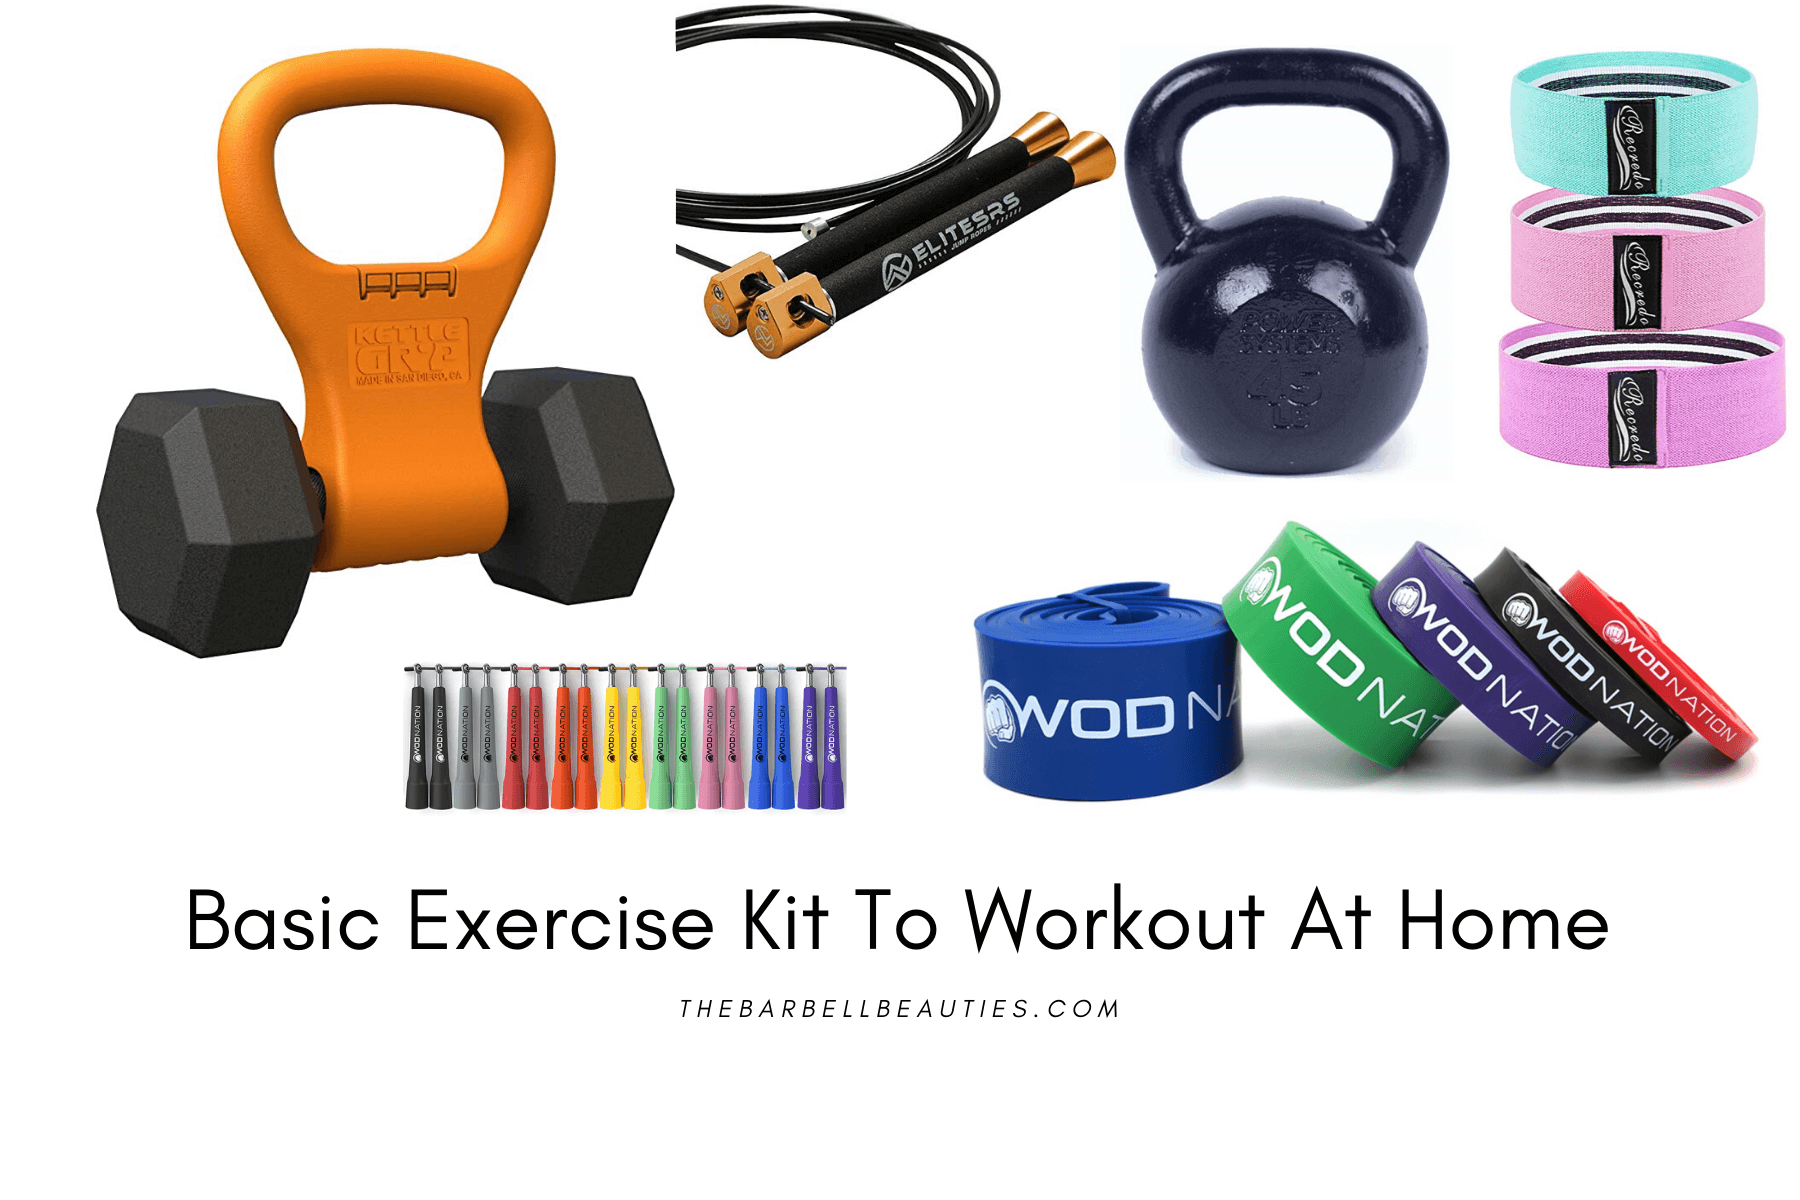 Basic Exercise Kit To Workout At Home